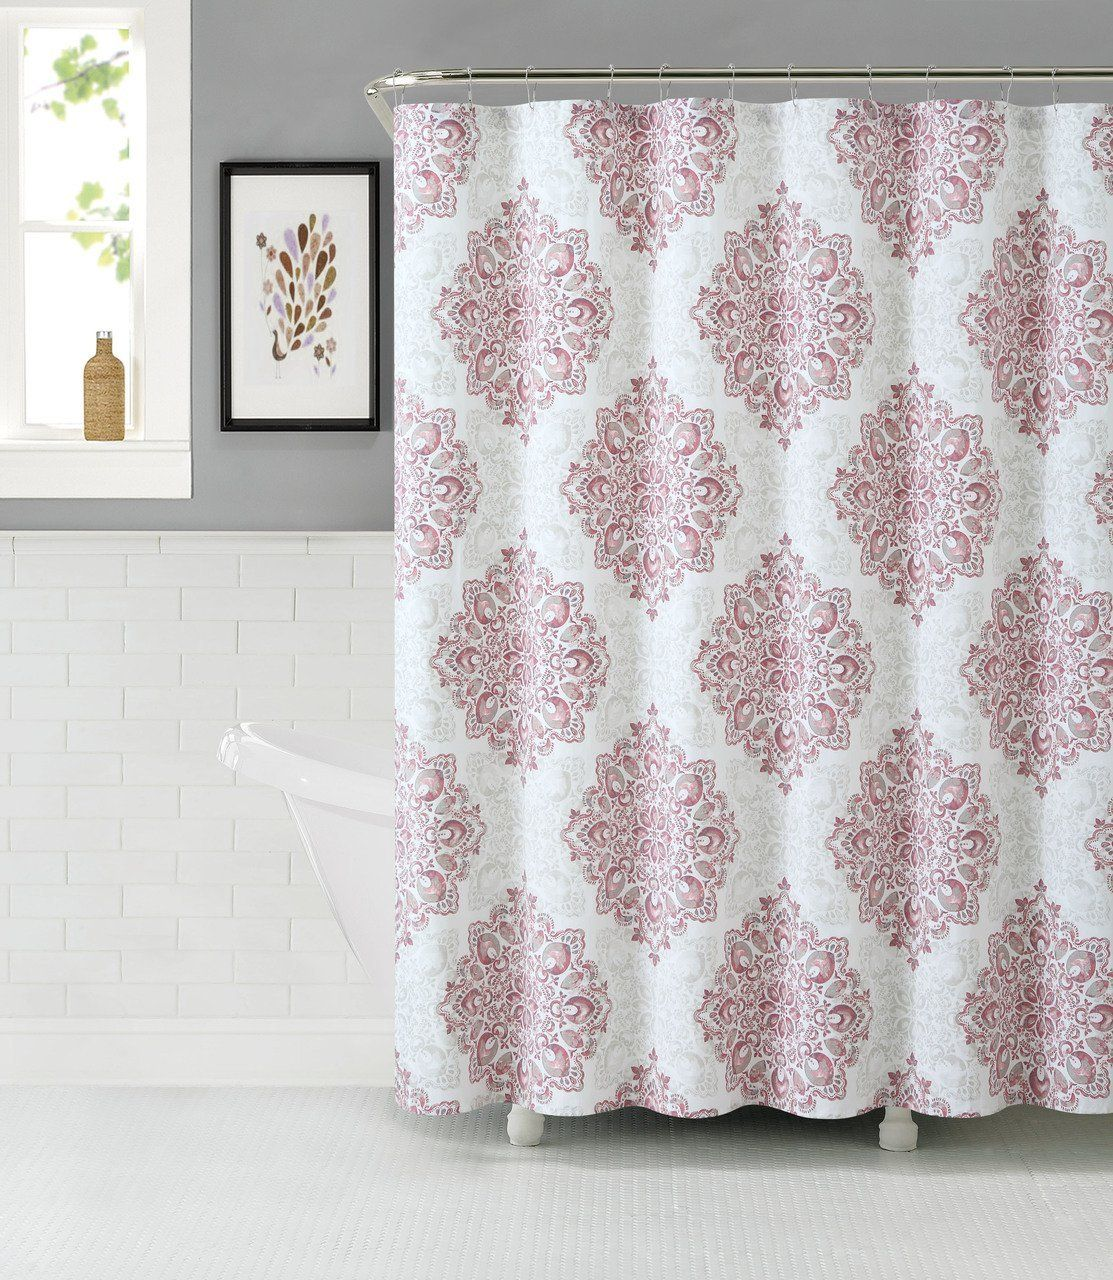 Amazon Com Tranquility Cotton Rich Fabric Shower Curtain With